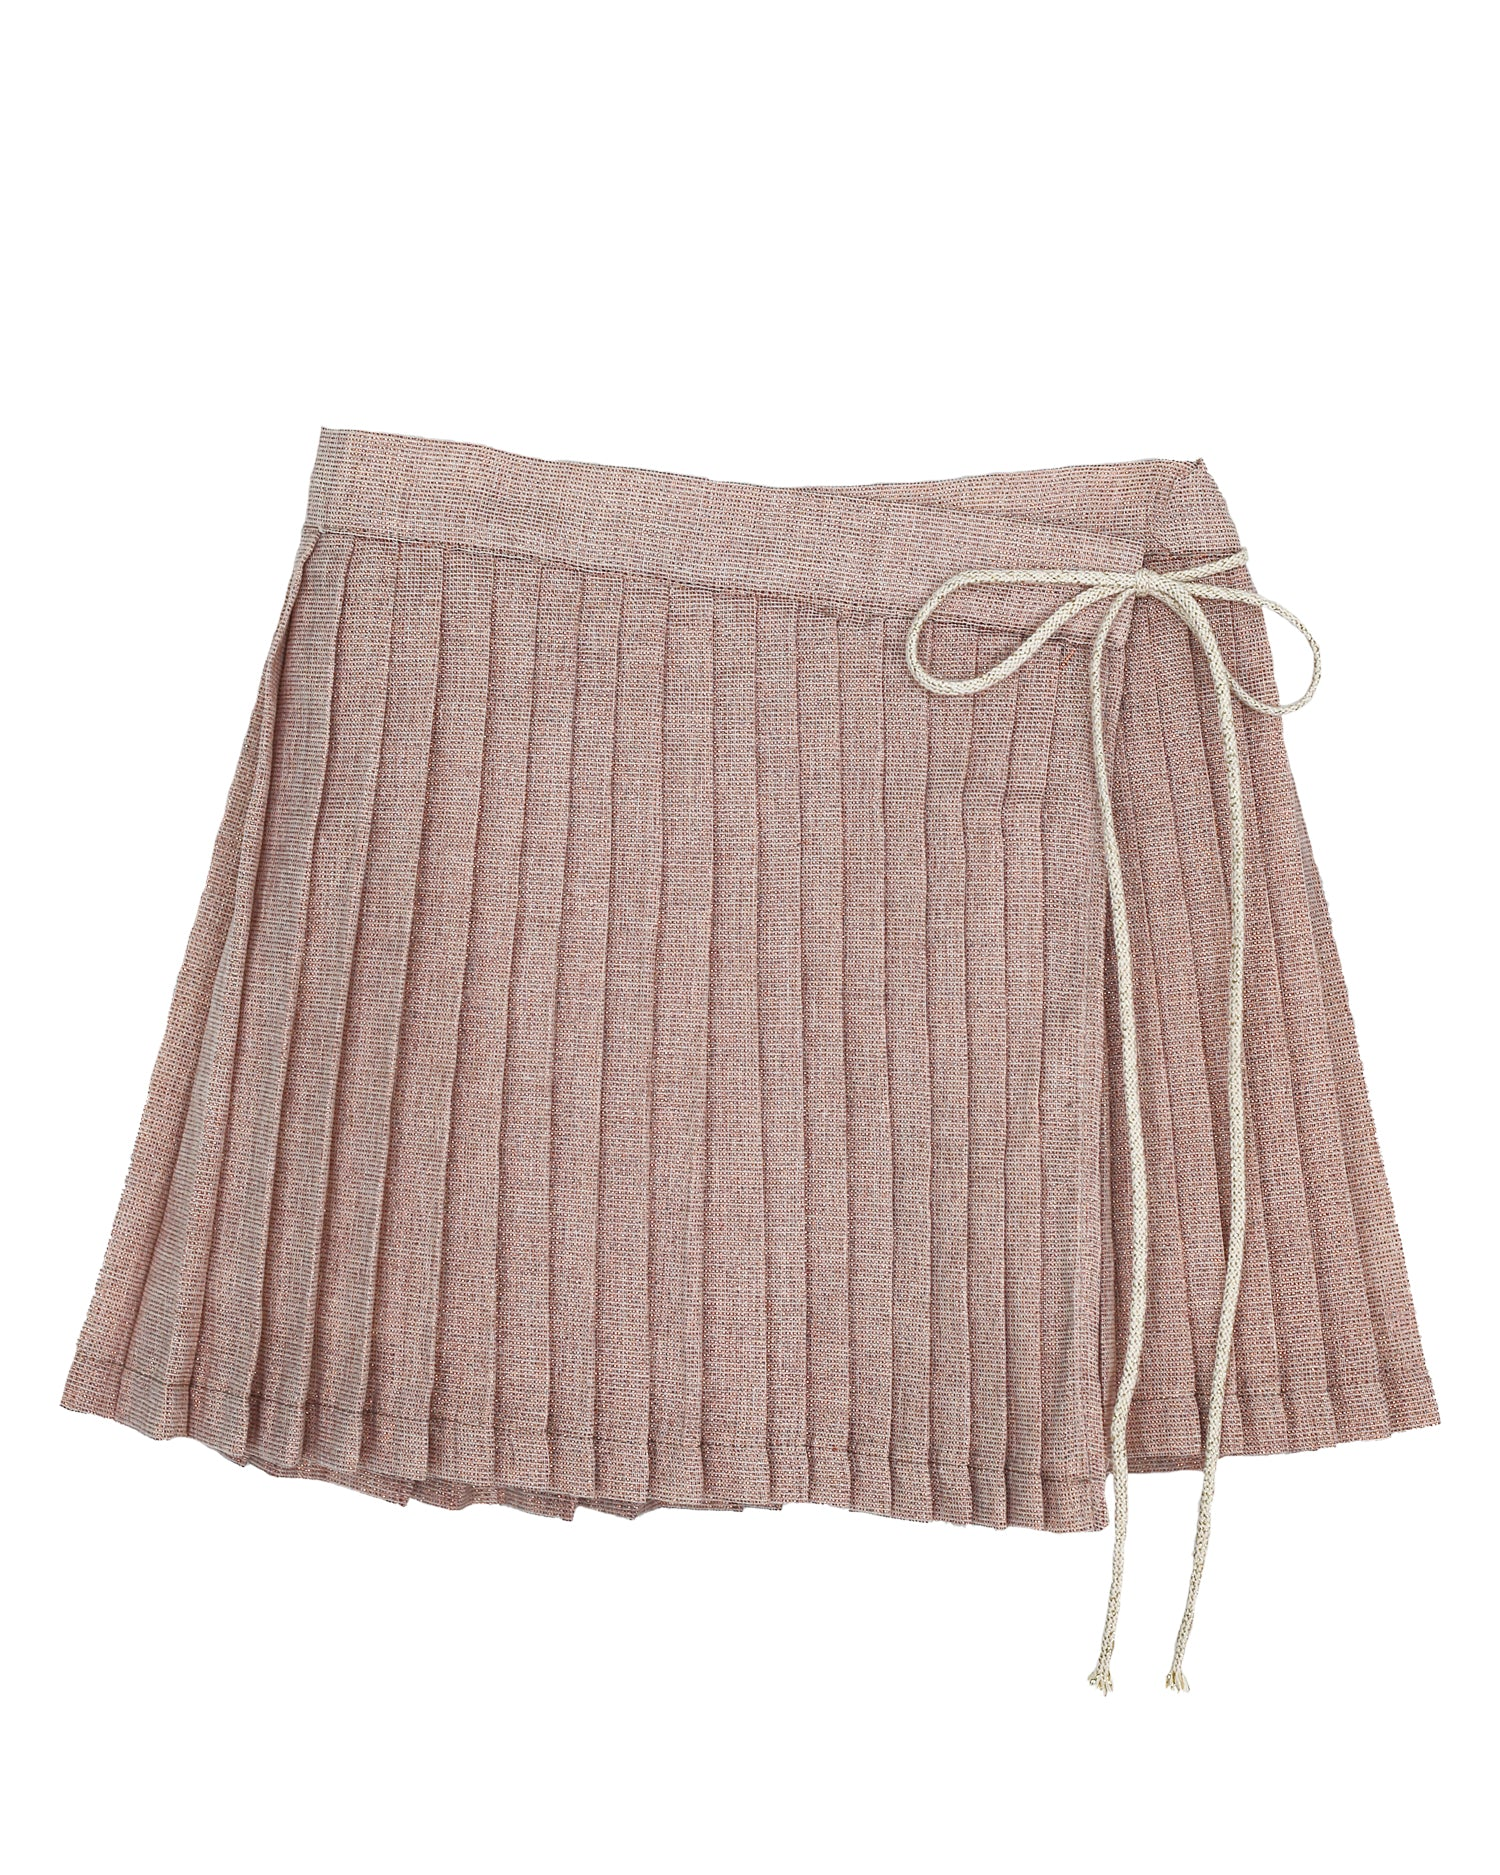 Bert Pleated Skirt in Rose Gold